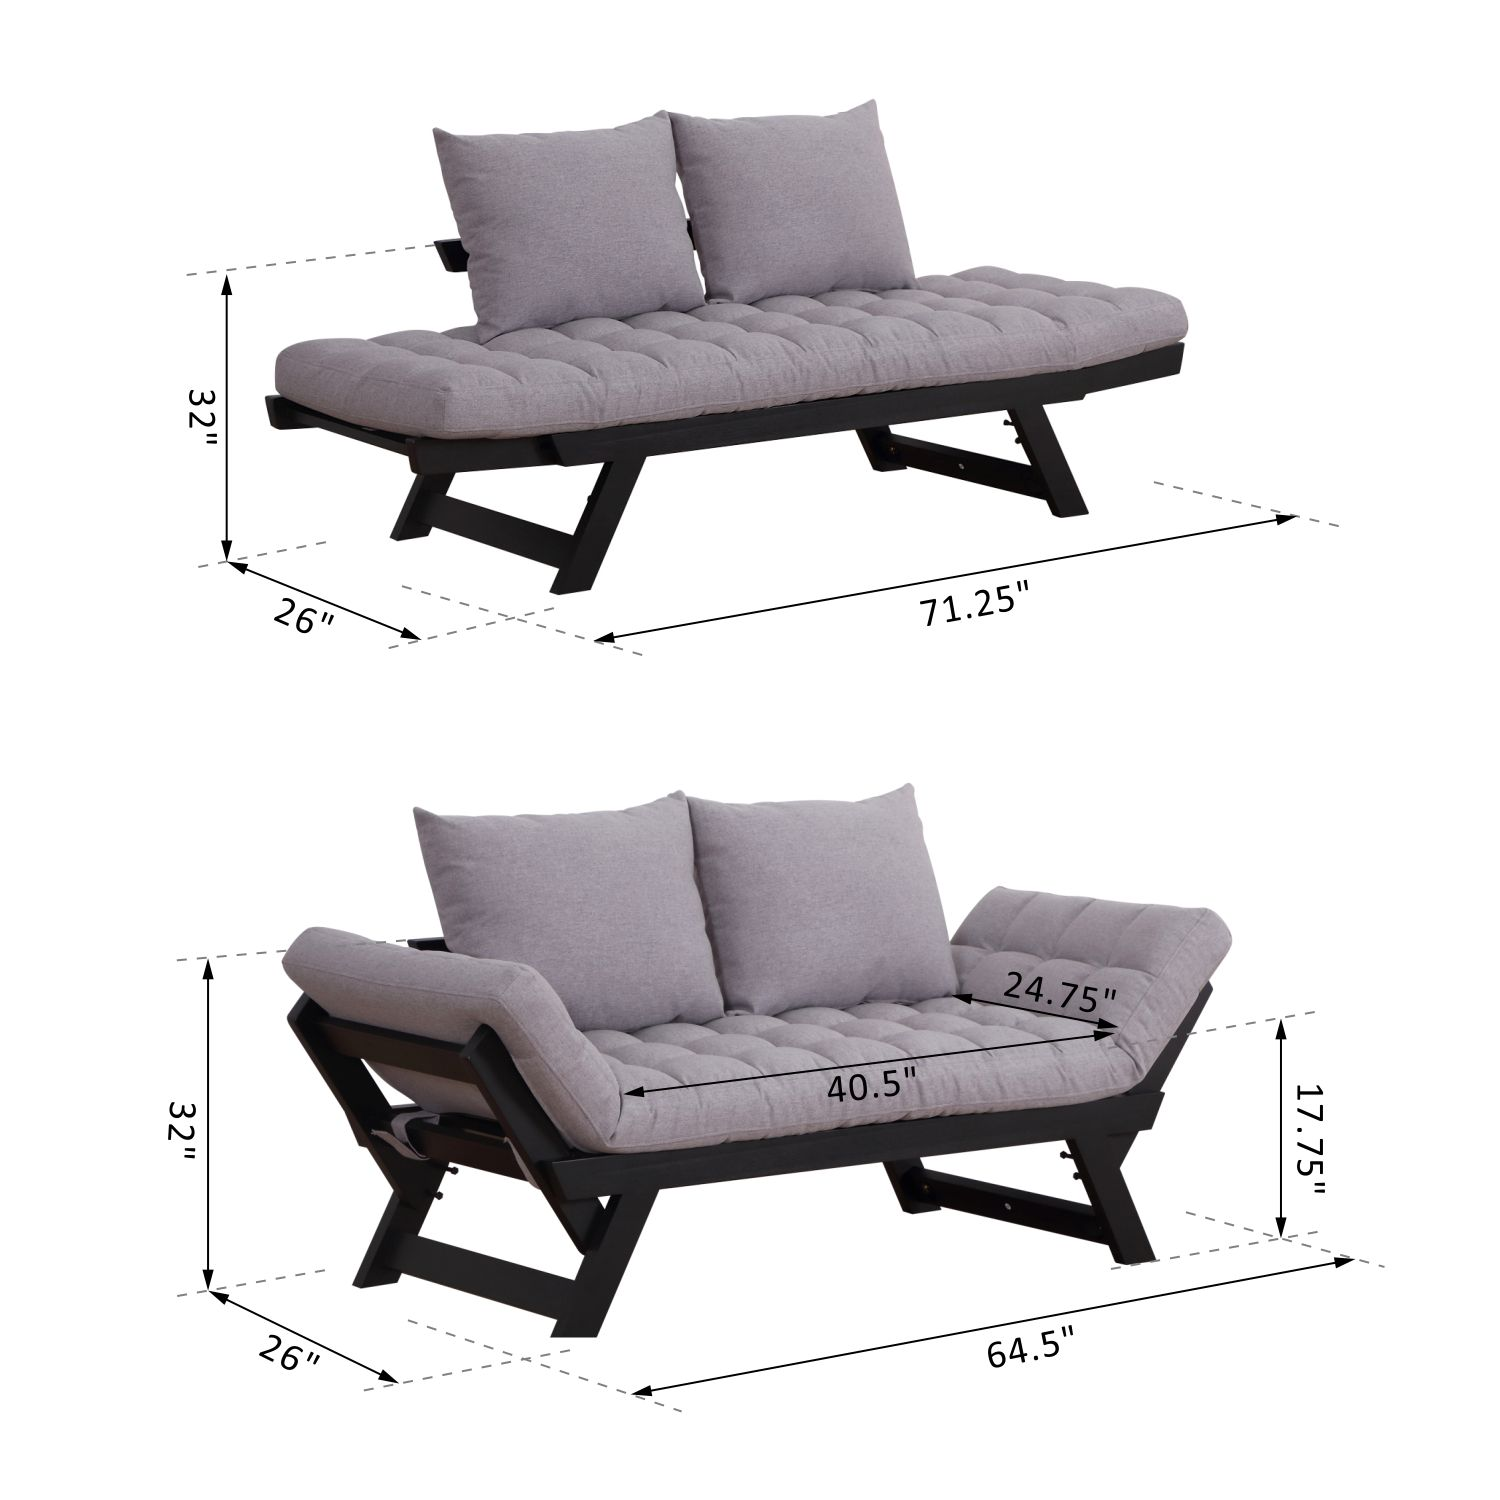 Convertible-Sofa-Bed-Sleeper-Couch-Chaise-Lounge-Chair-Adjustable-Padded-Pillow thumbnail 30